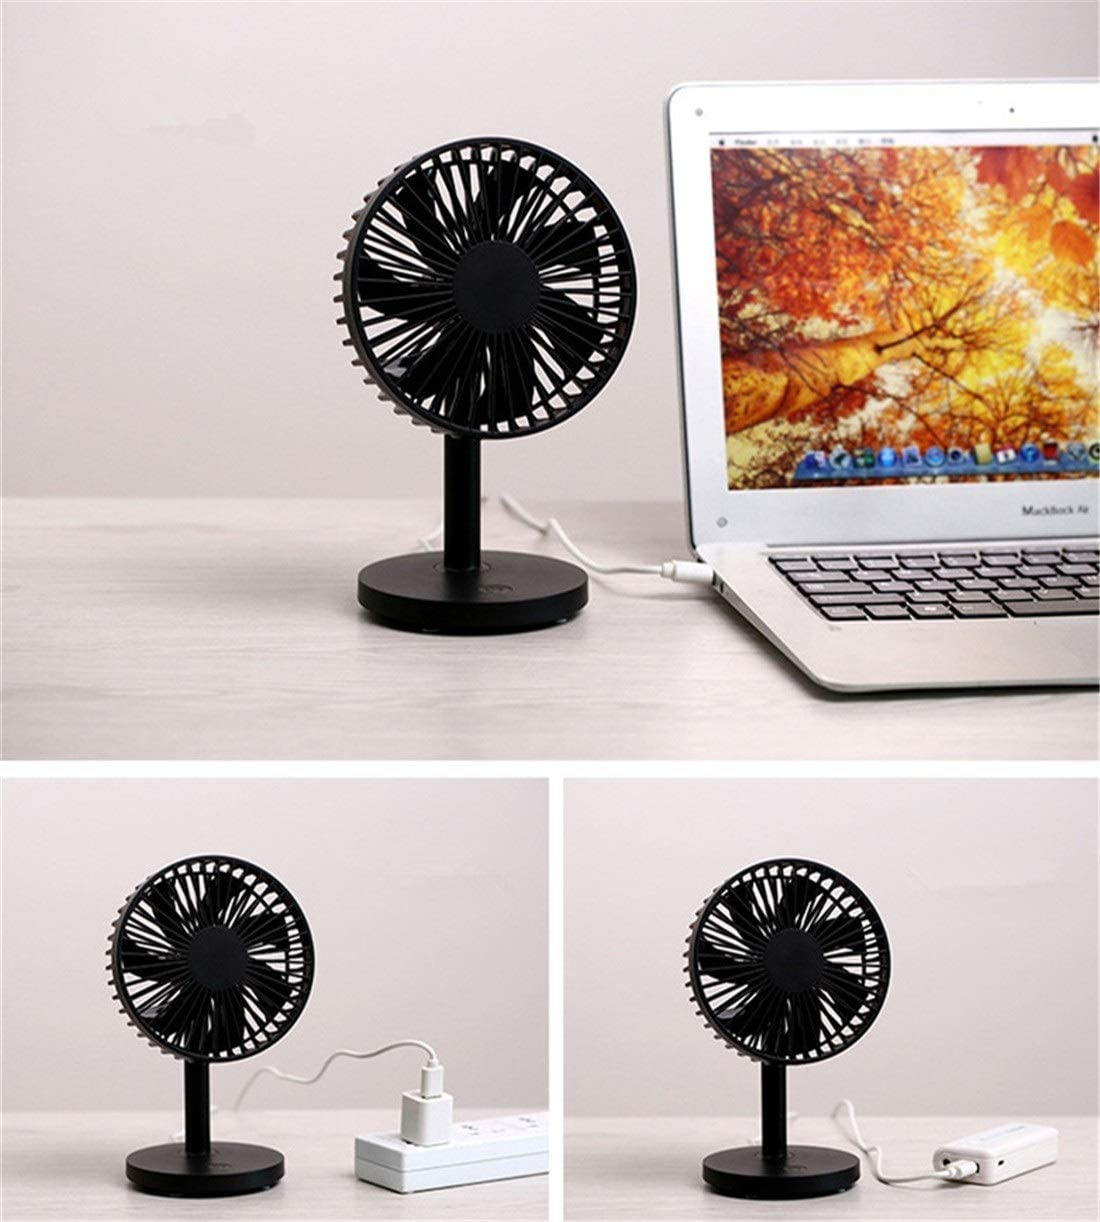 TYUIO Desk Fan 360/° Vertically Blue Color Mini USB Fan Quiet Operation and Strong Airflow